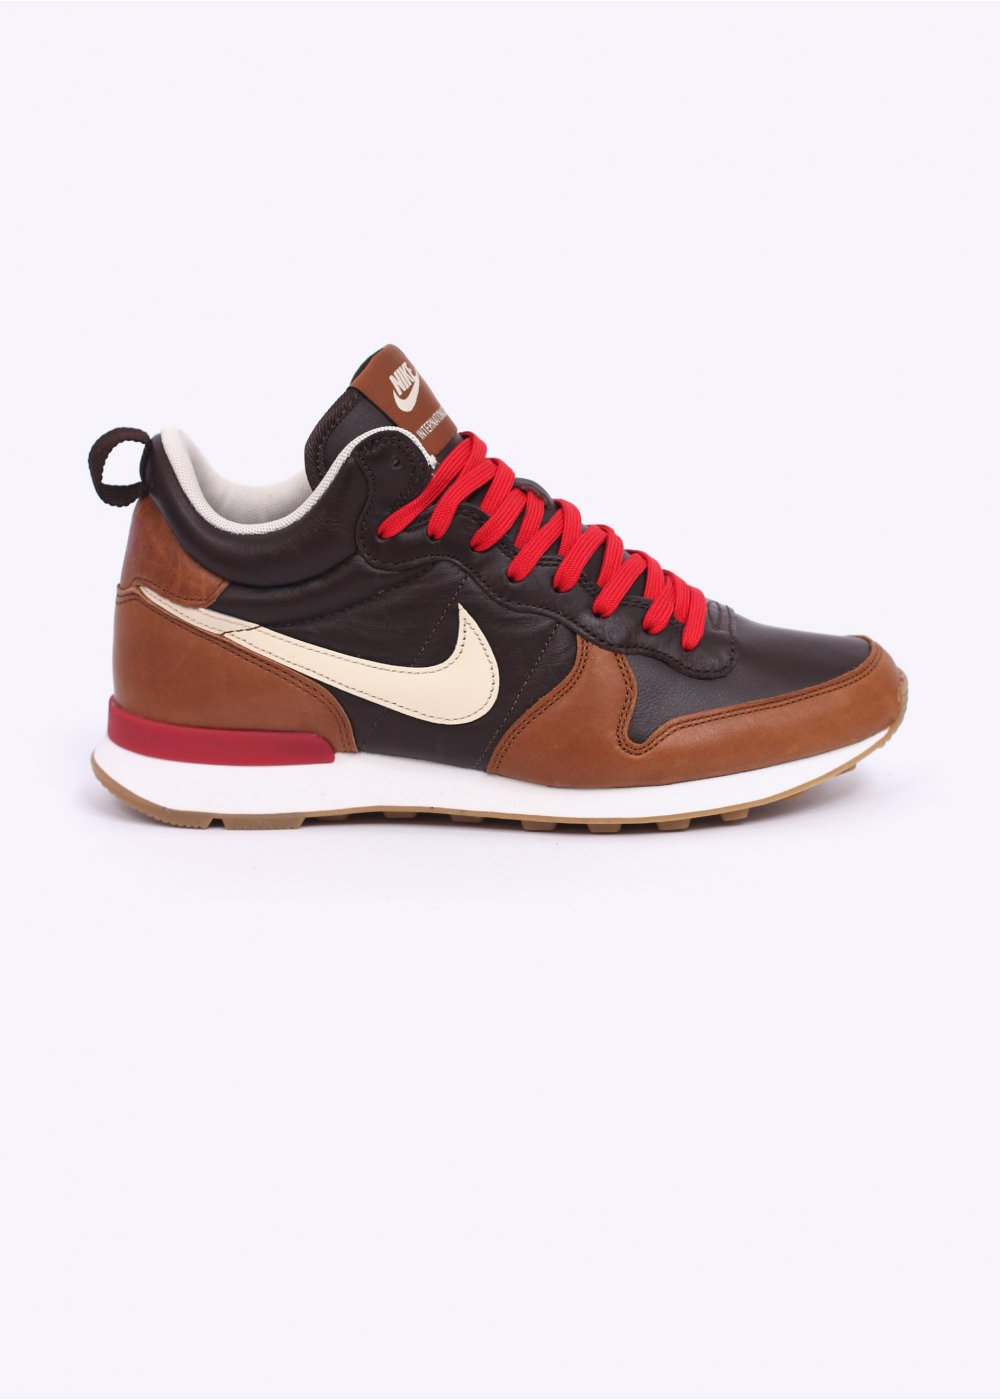 Nike Quickstrike QS Internationalist Mid 'Escape Pack' - Baroque Brown / Ale Brown / Red Clay / Flat Opal